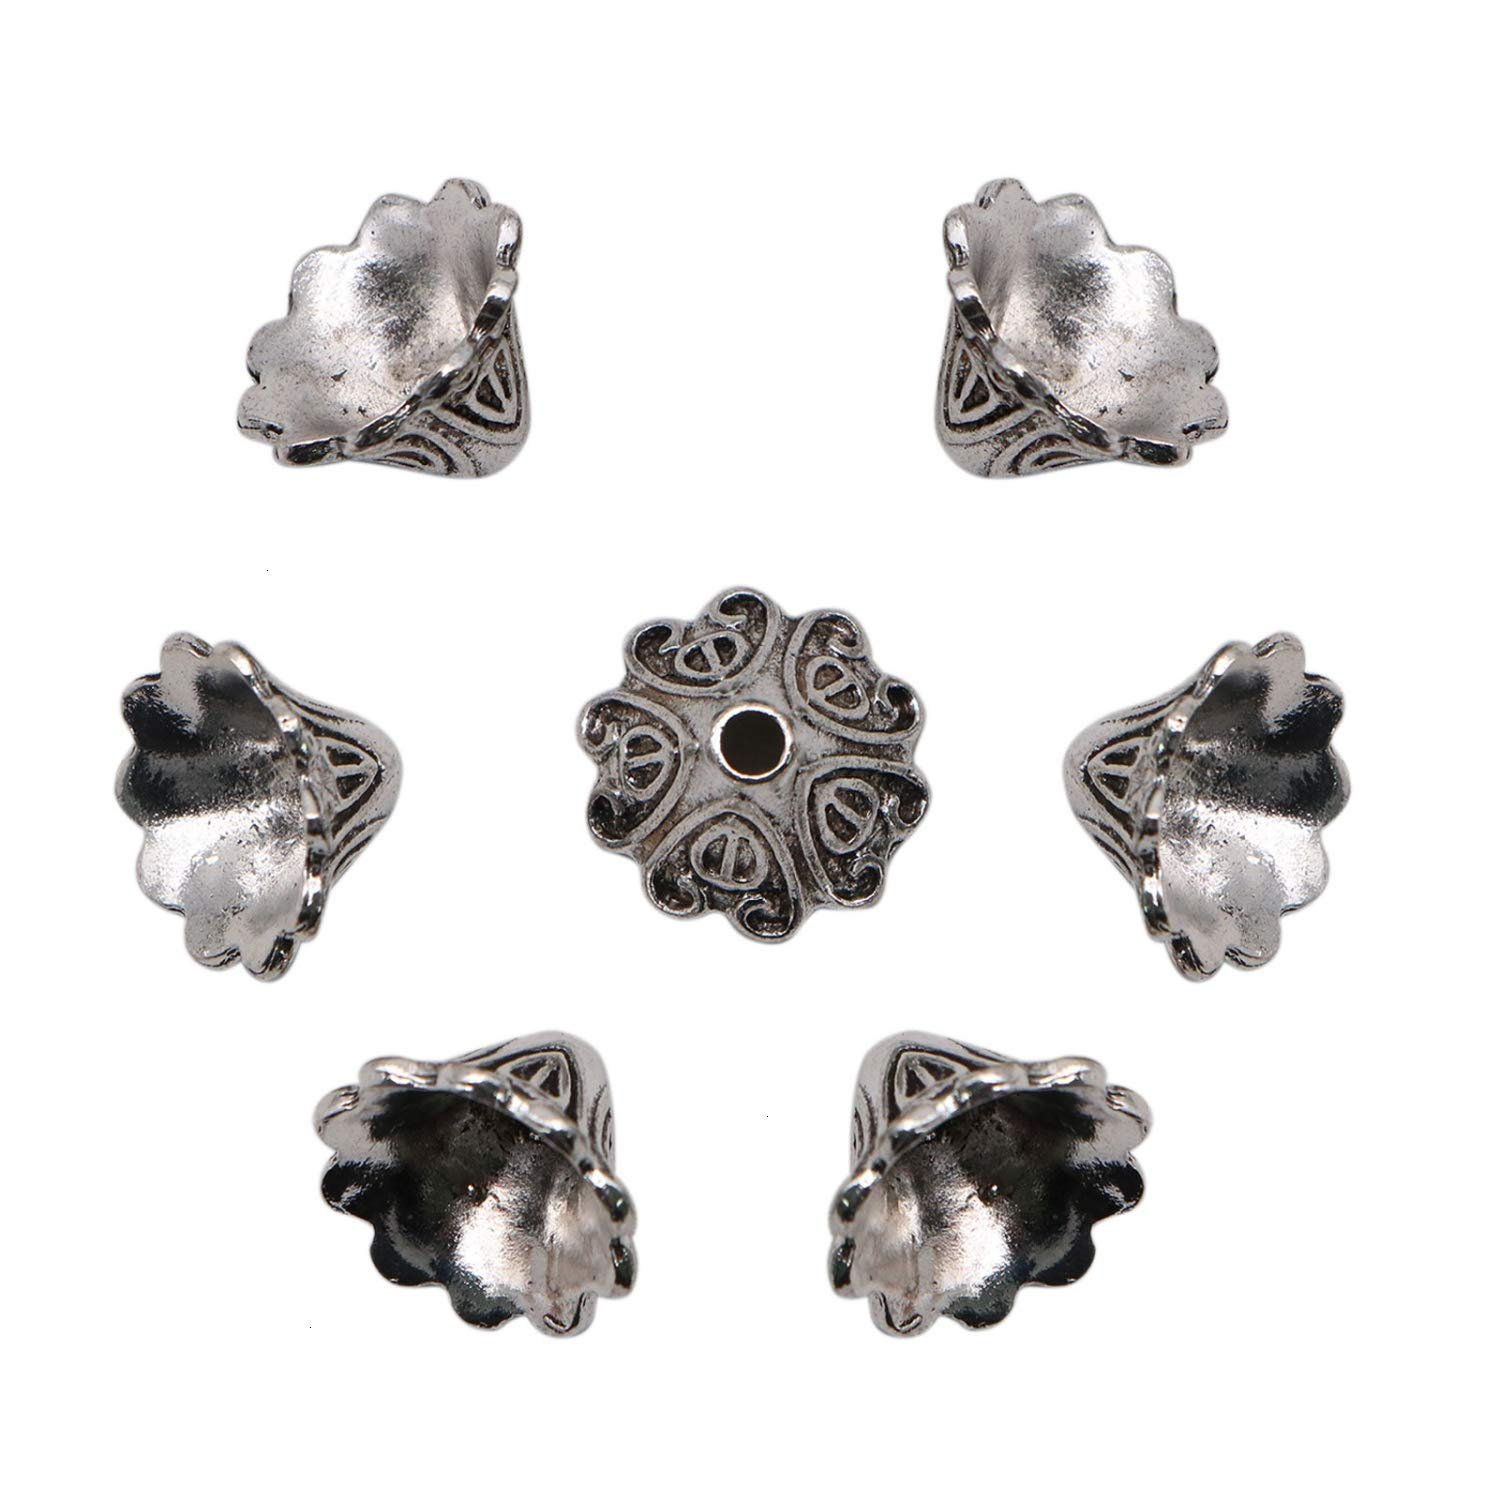 10mm16mm​,Tibetan Style JETEHO 50 PCS Flower Bead Caps Tassel Cup Shape End Cap Lead Free Antique Silver Jewelry Making